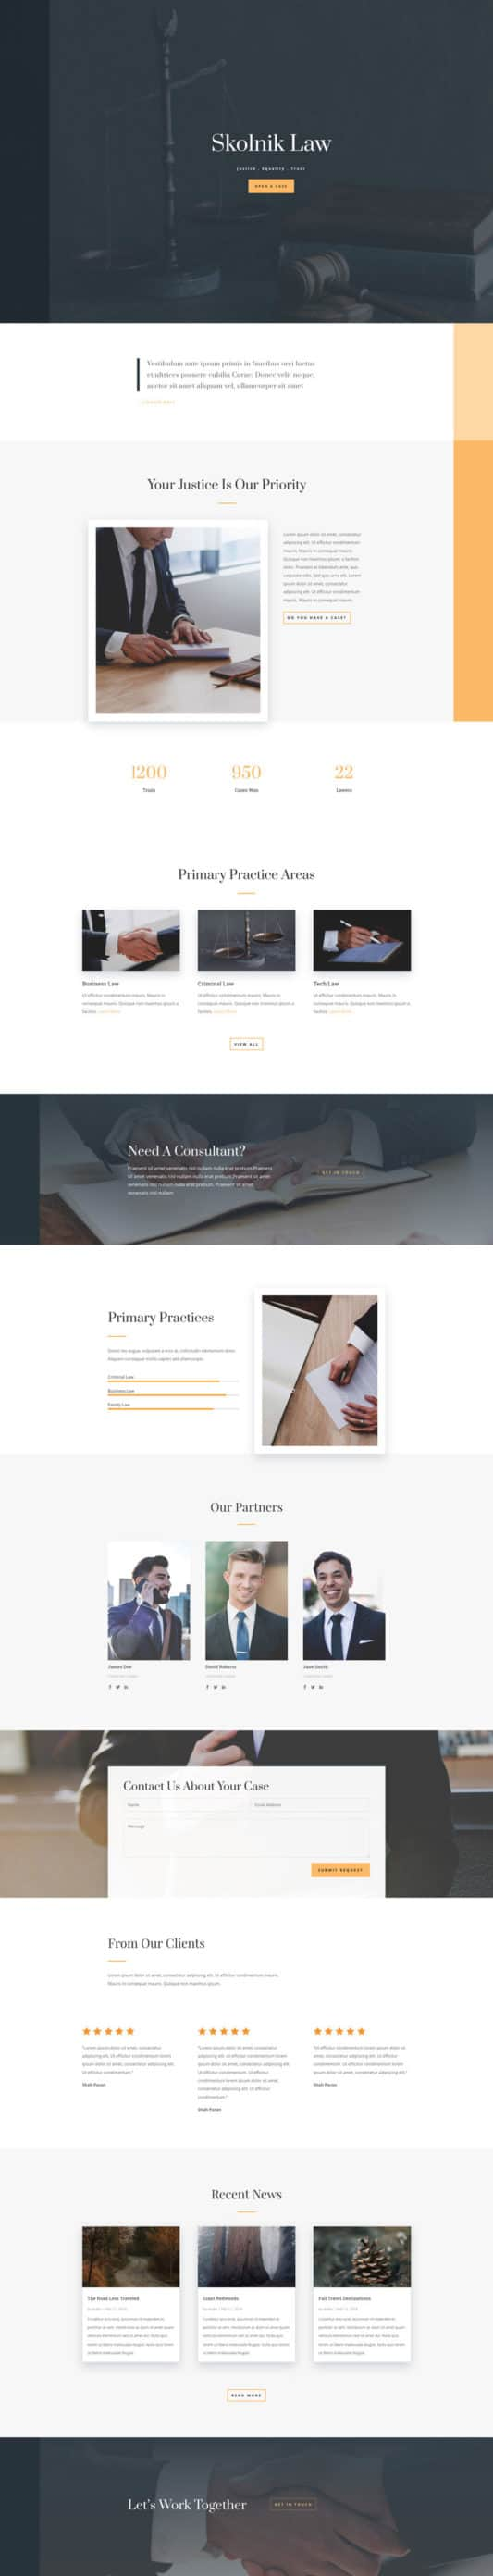 Law Firm Web Design 6